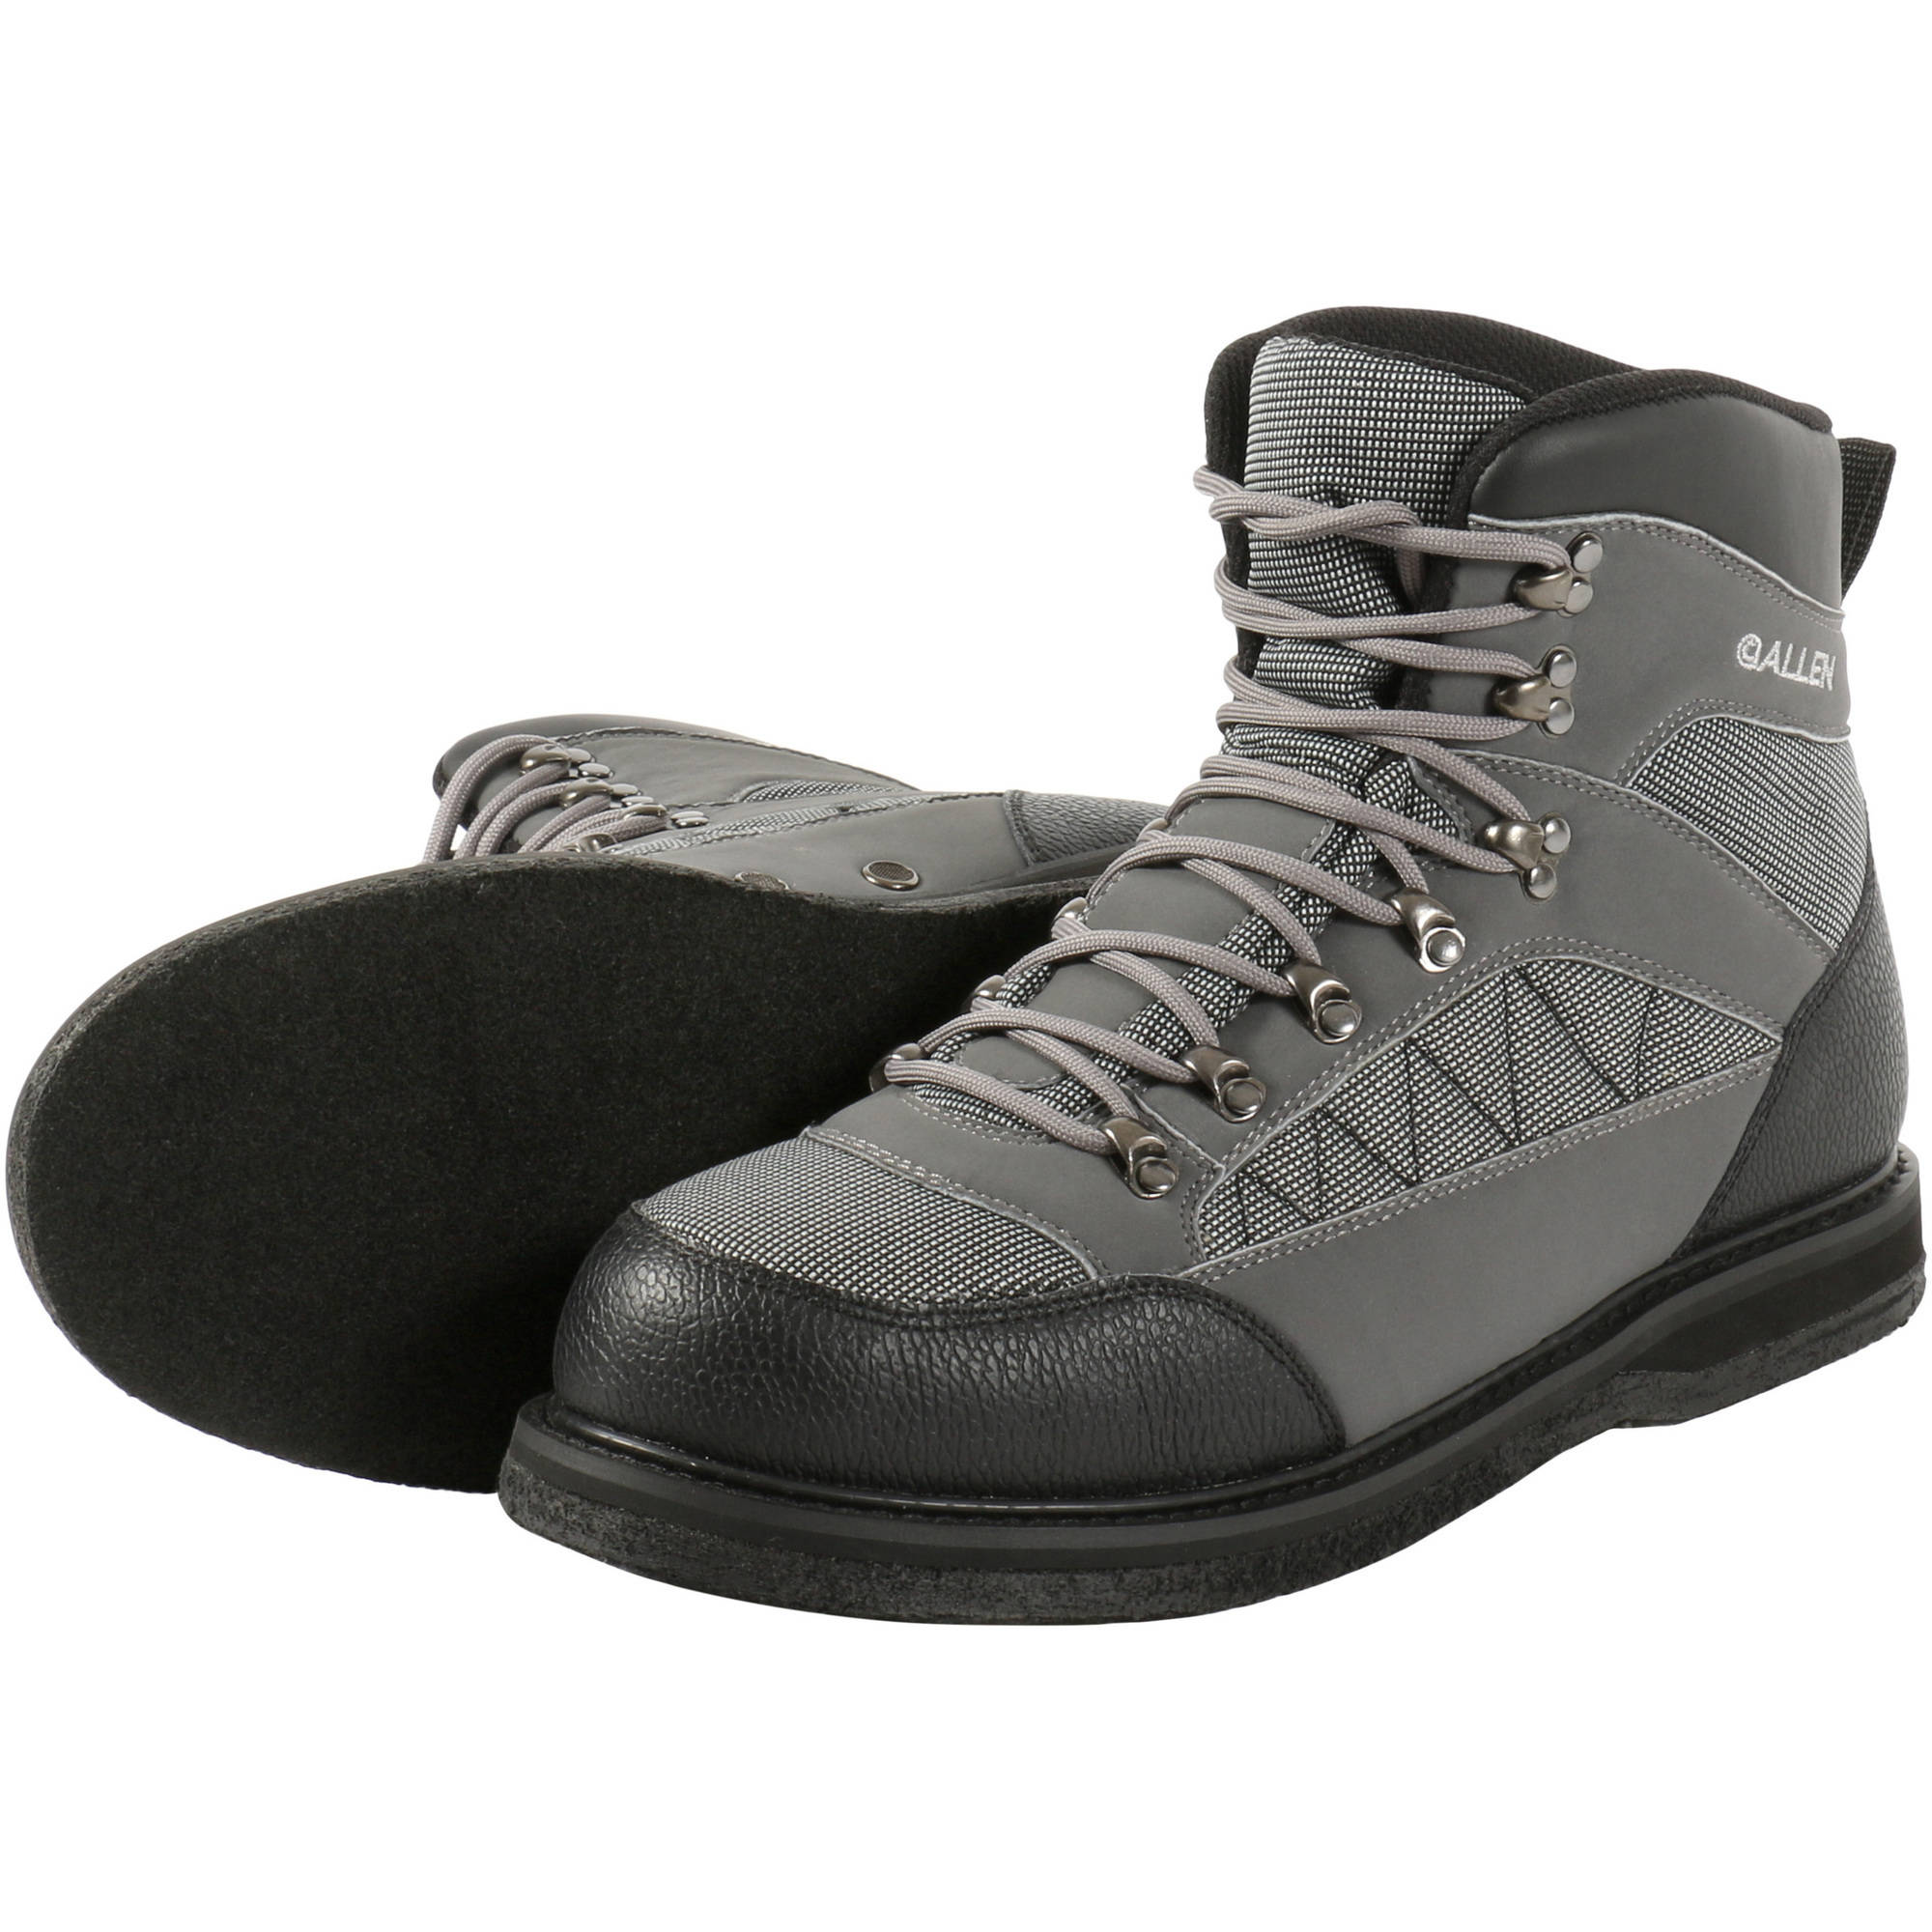 Allen Granite River Wading Boots, Size 10 by Allen Company